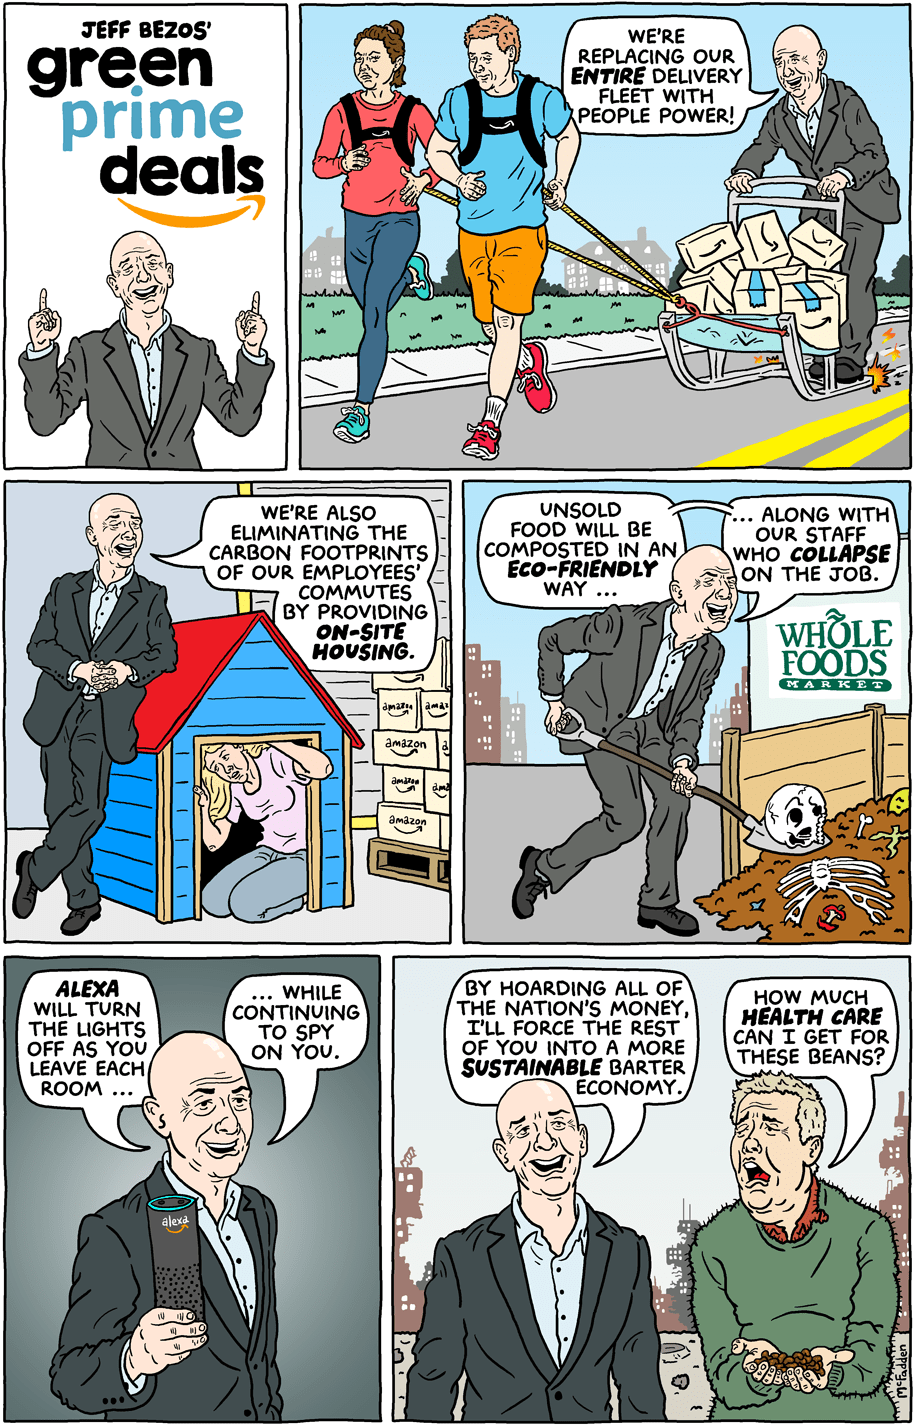 Cartoon: Jeff Bezos' green prime deals